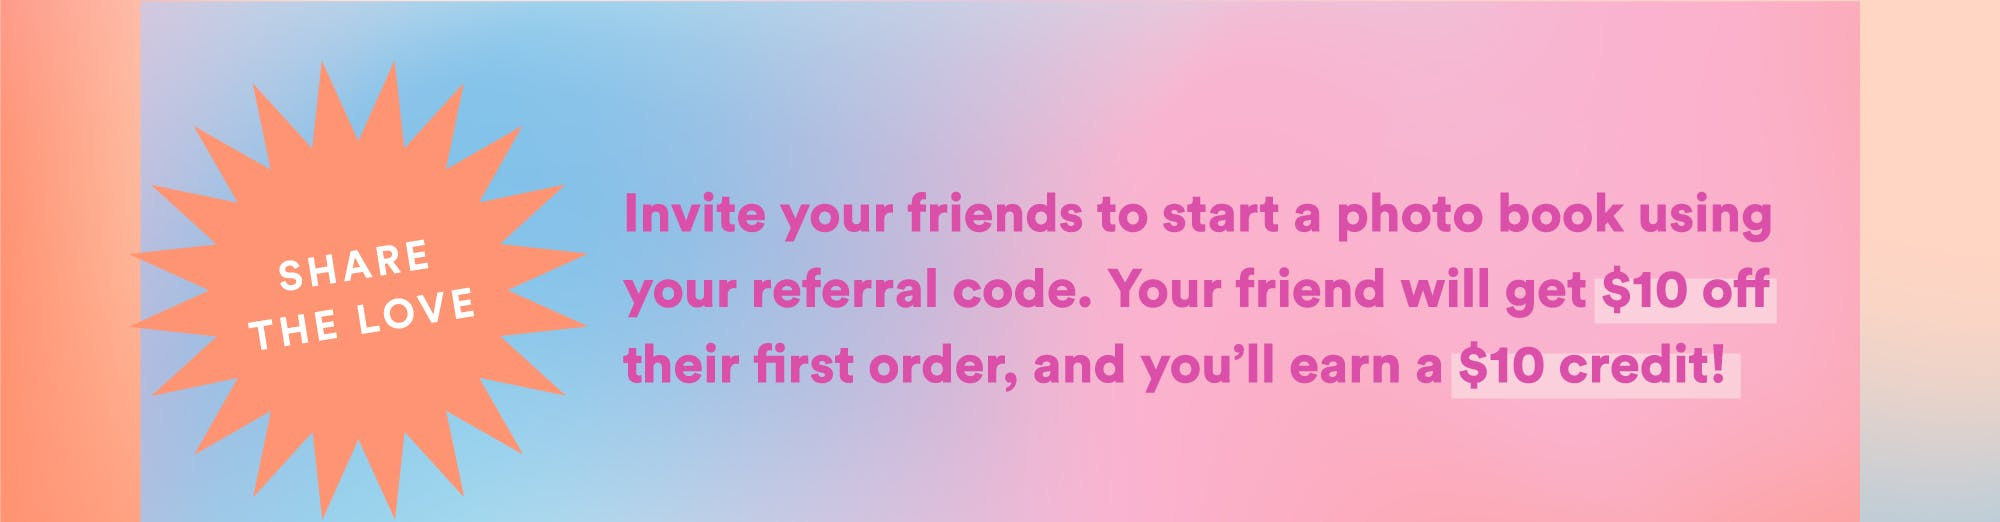 Invite your friends to start a photo book using your referral code.  Your friend will get \u002410 off their first order, and you'll earn credit (up to \u0024100).